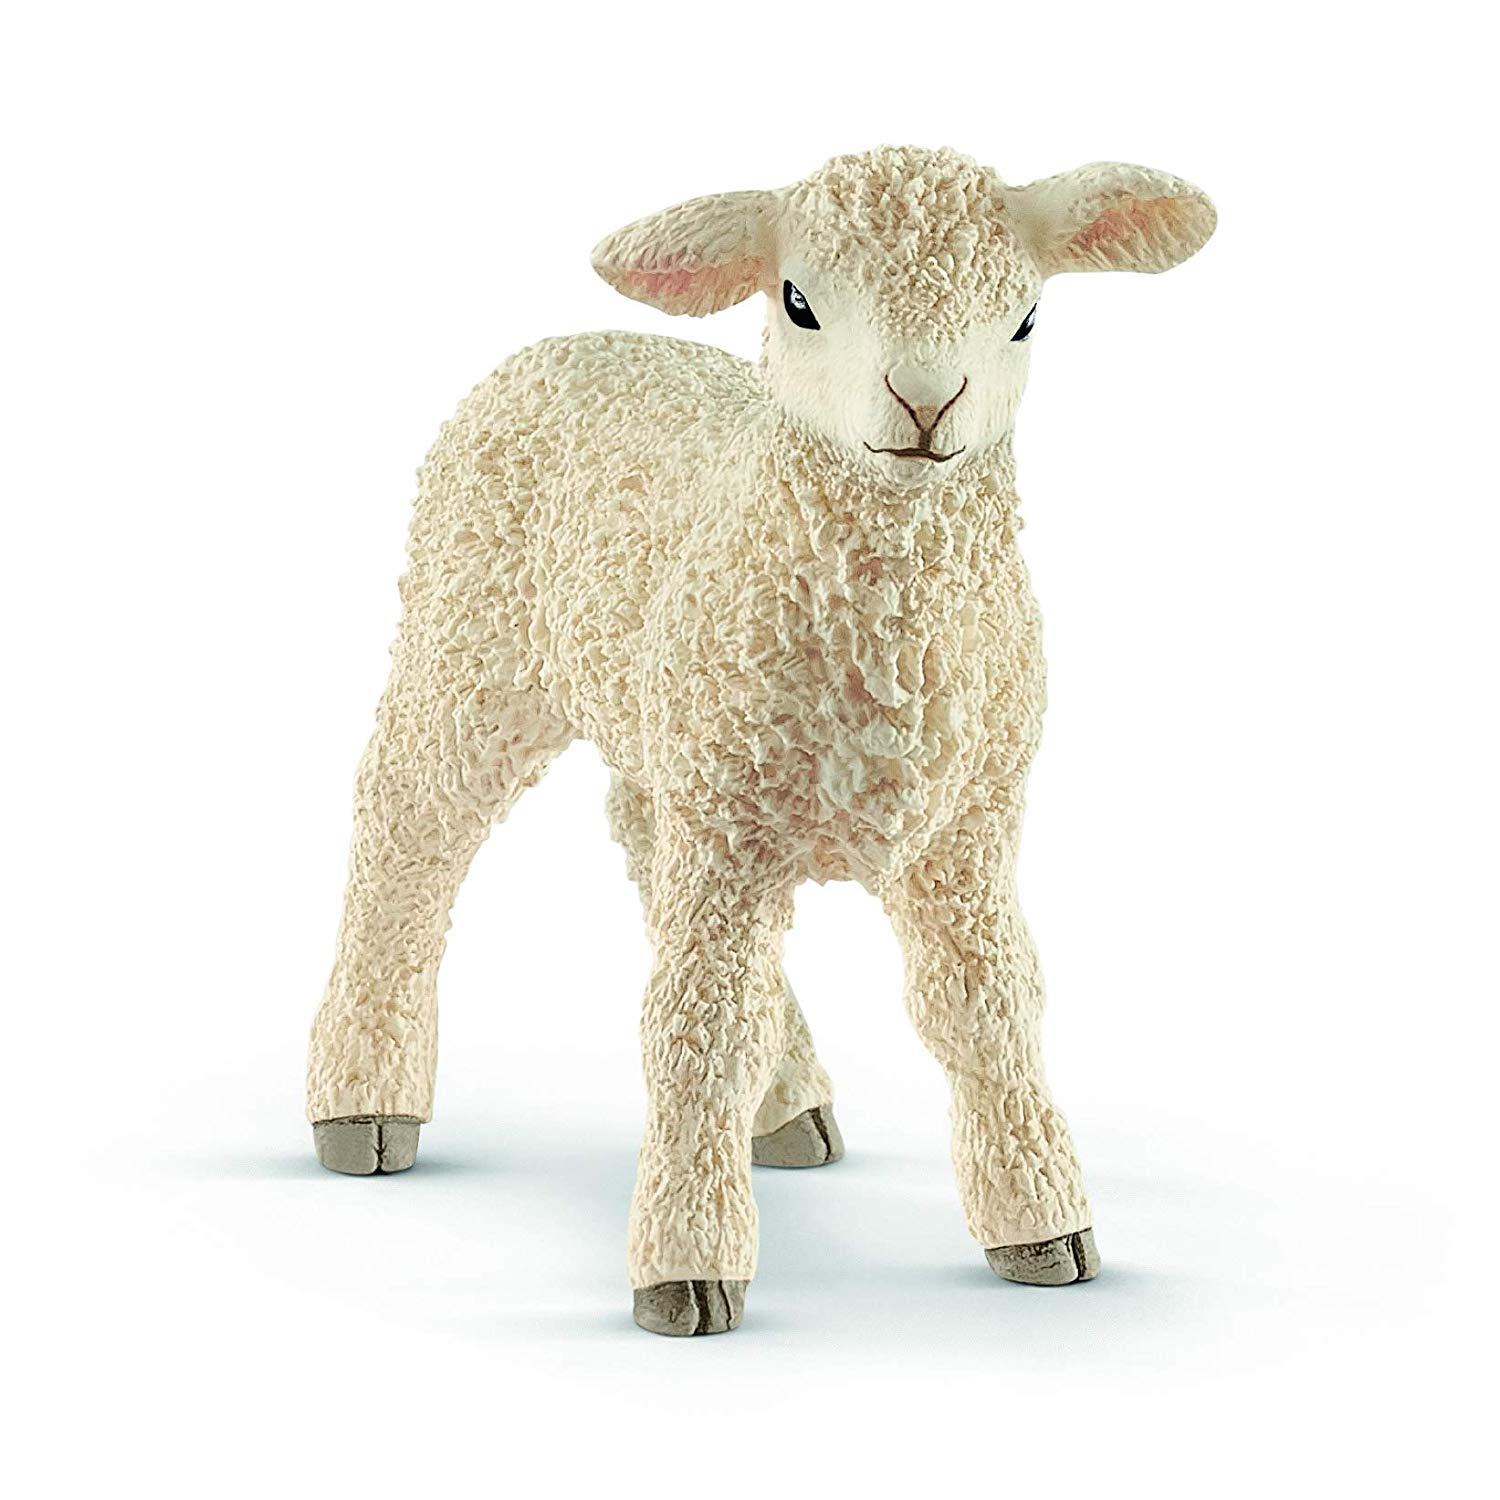 SCHLEICH FARM WORLD Lammas